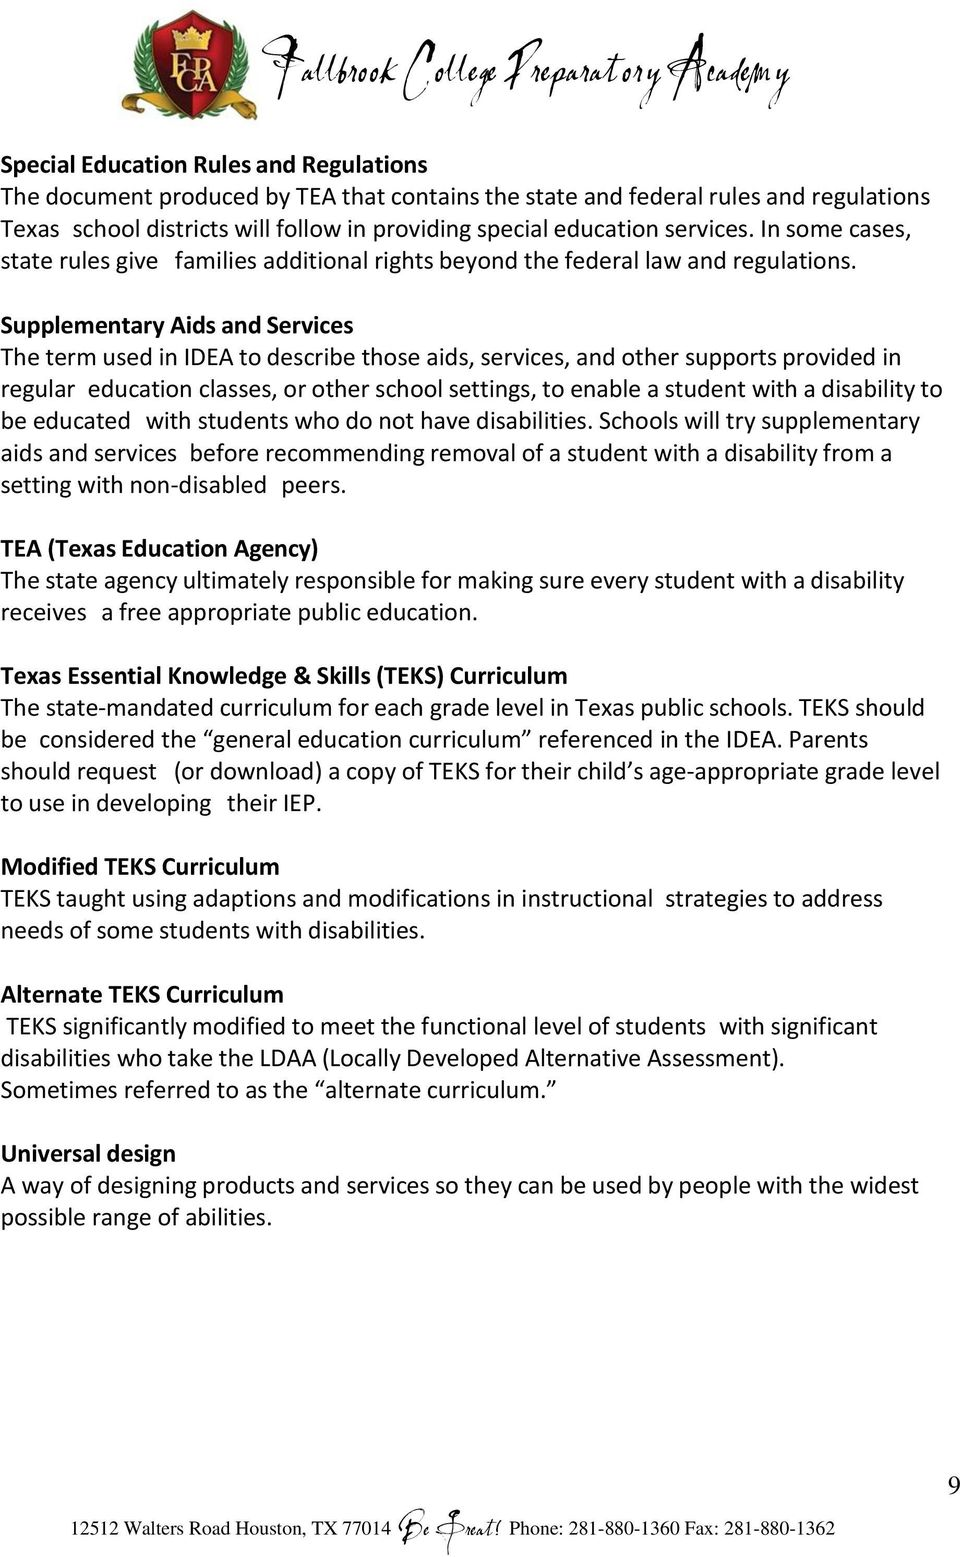 Supplementary Aids and Services The term used in IDEA to describe those aids, services, and other supports provided in regular education classes, or other school settings, to enable a student with a